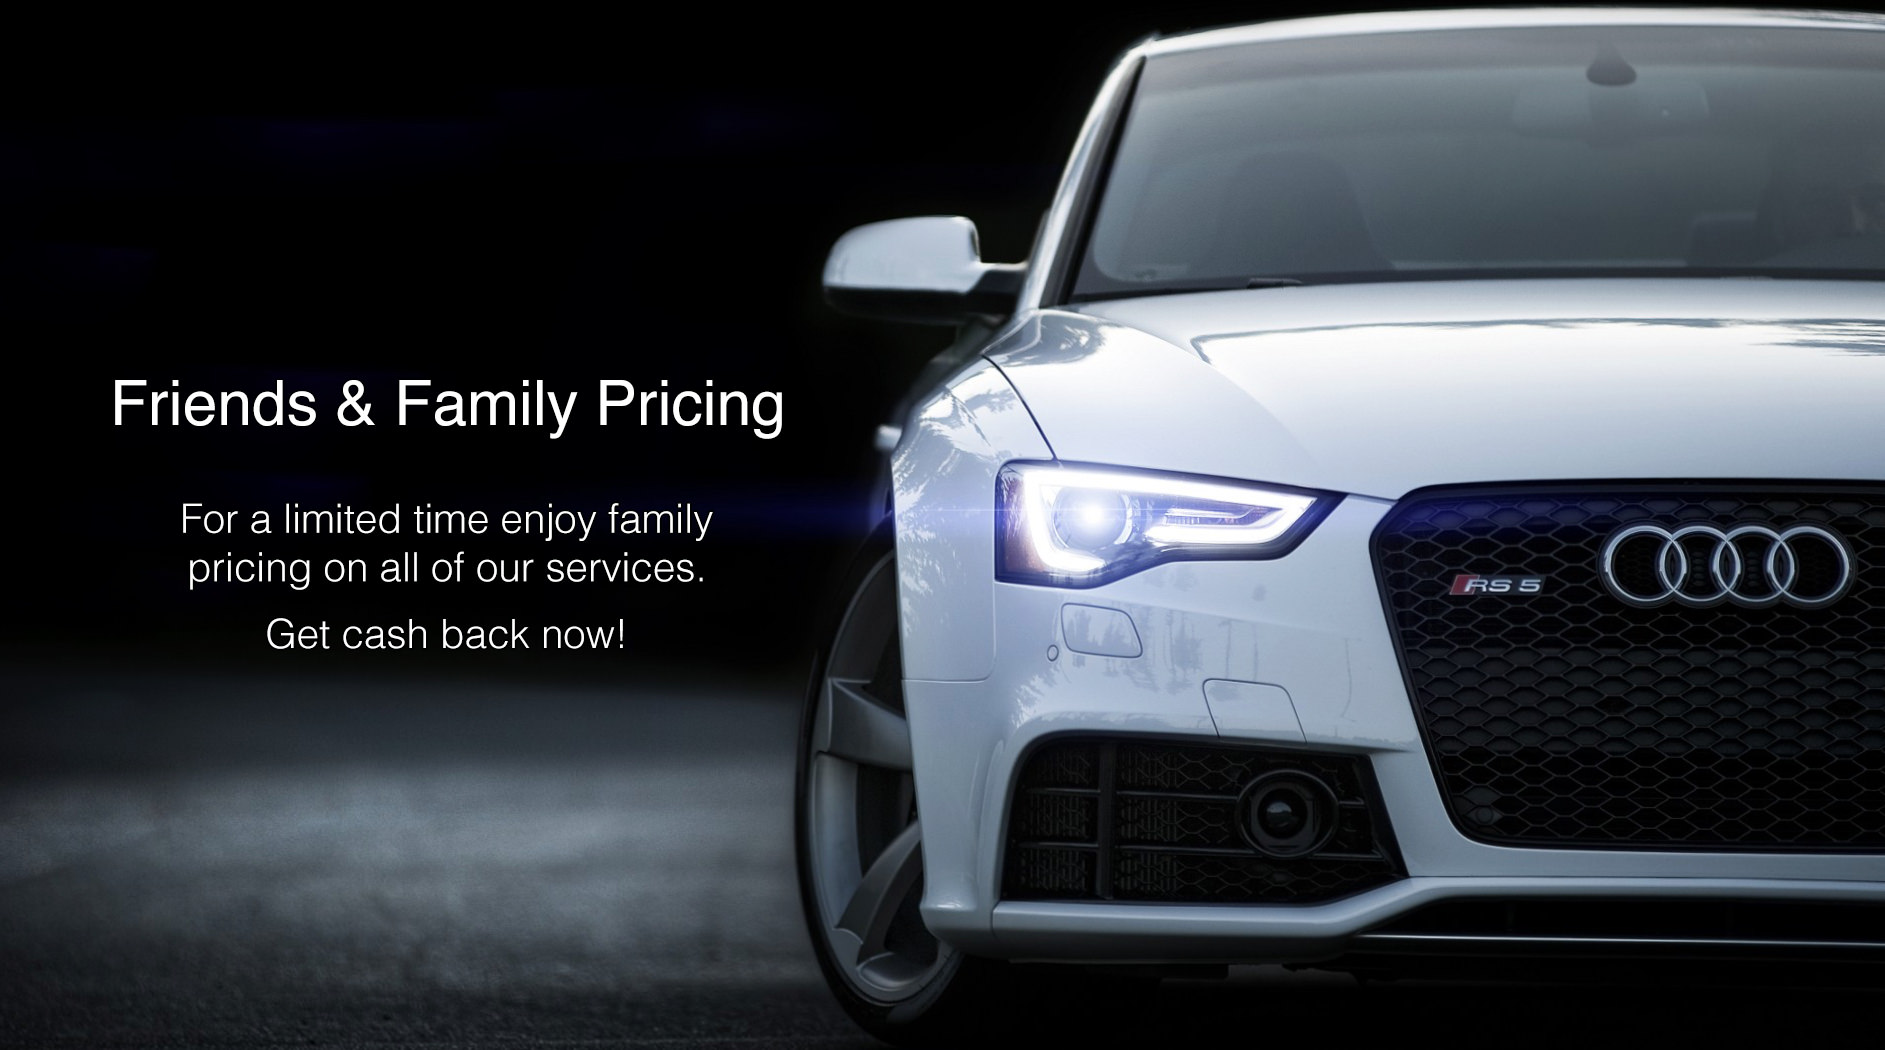 Friends & Family Pricing On Now!